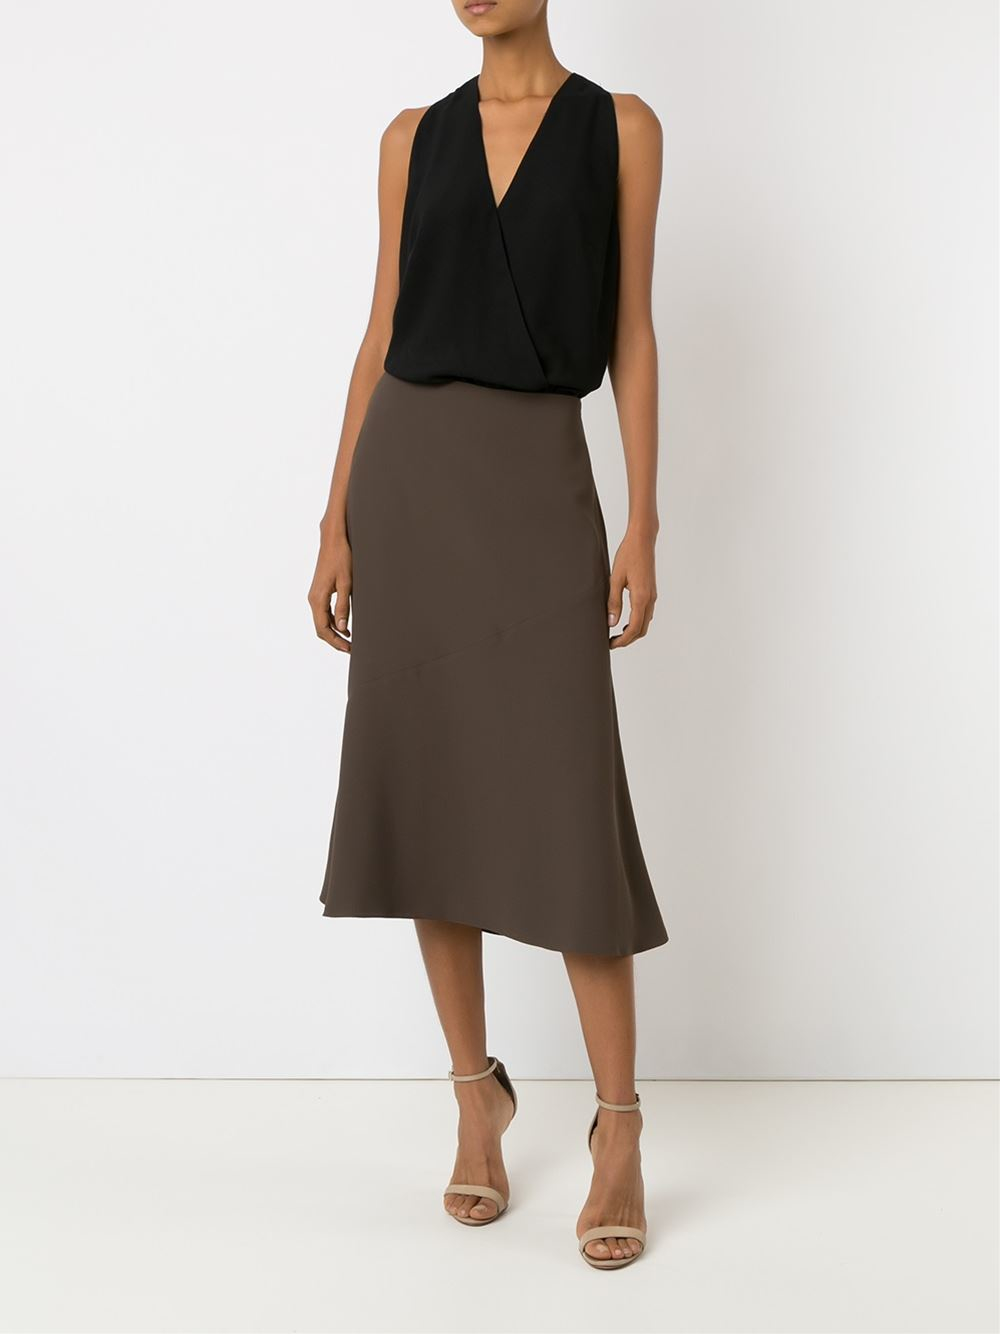 Andrea marques Mid-length A-line Skirt in Gray (GREEN)